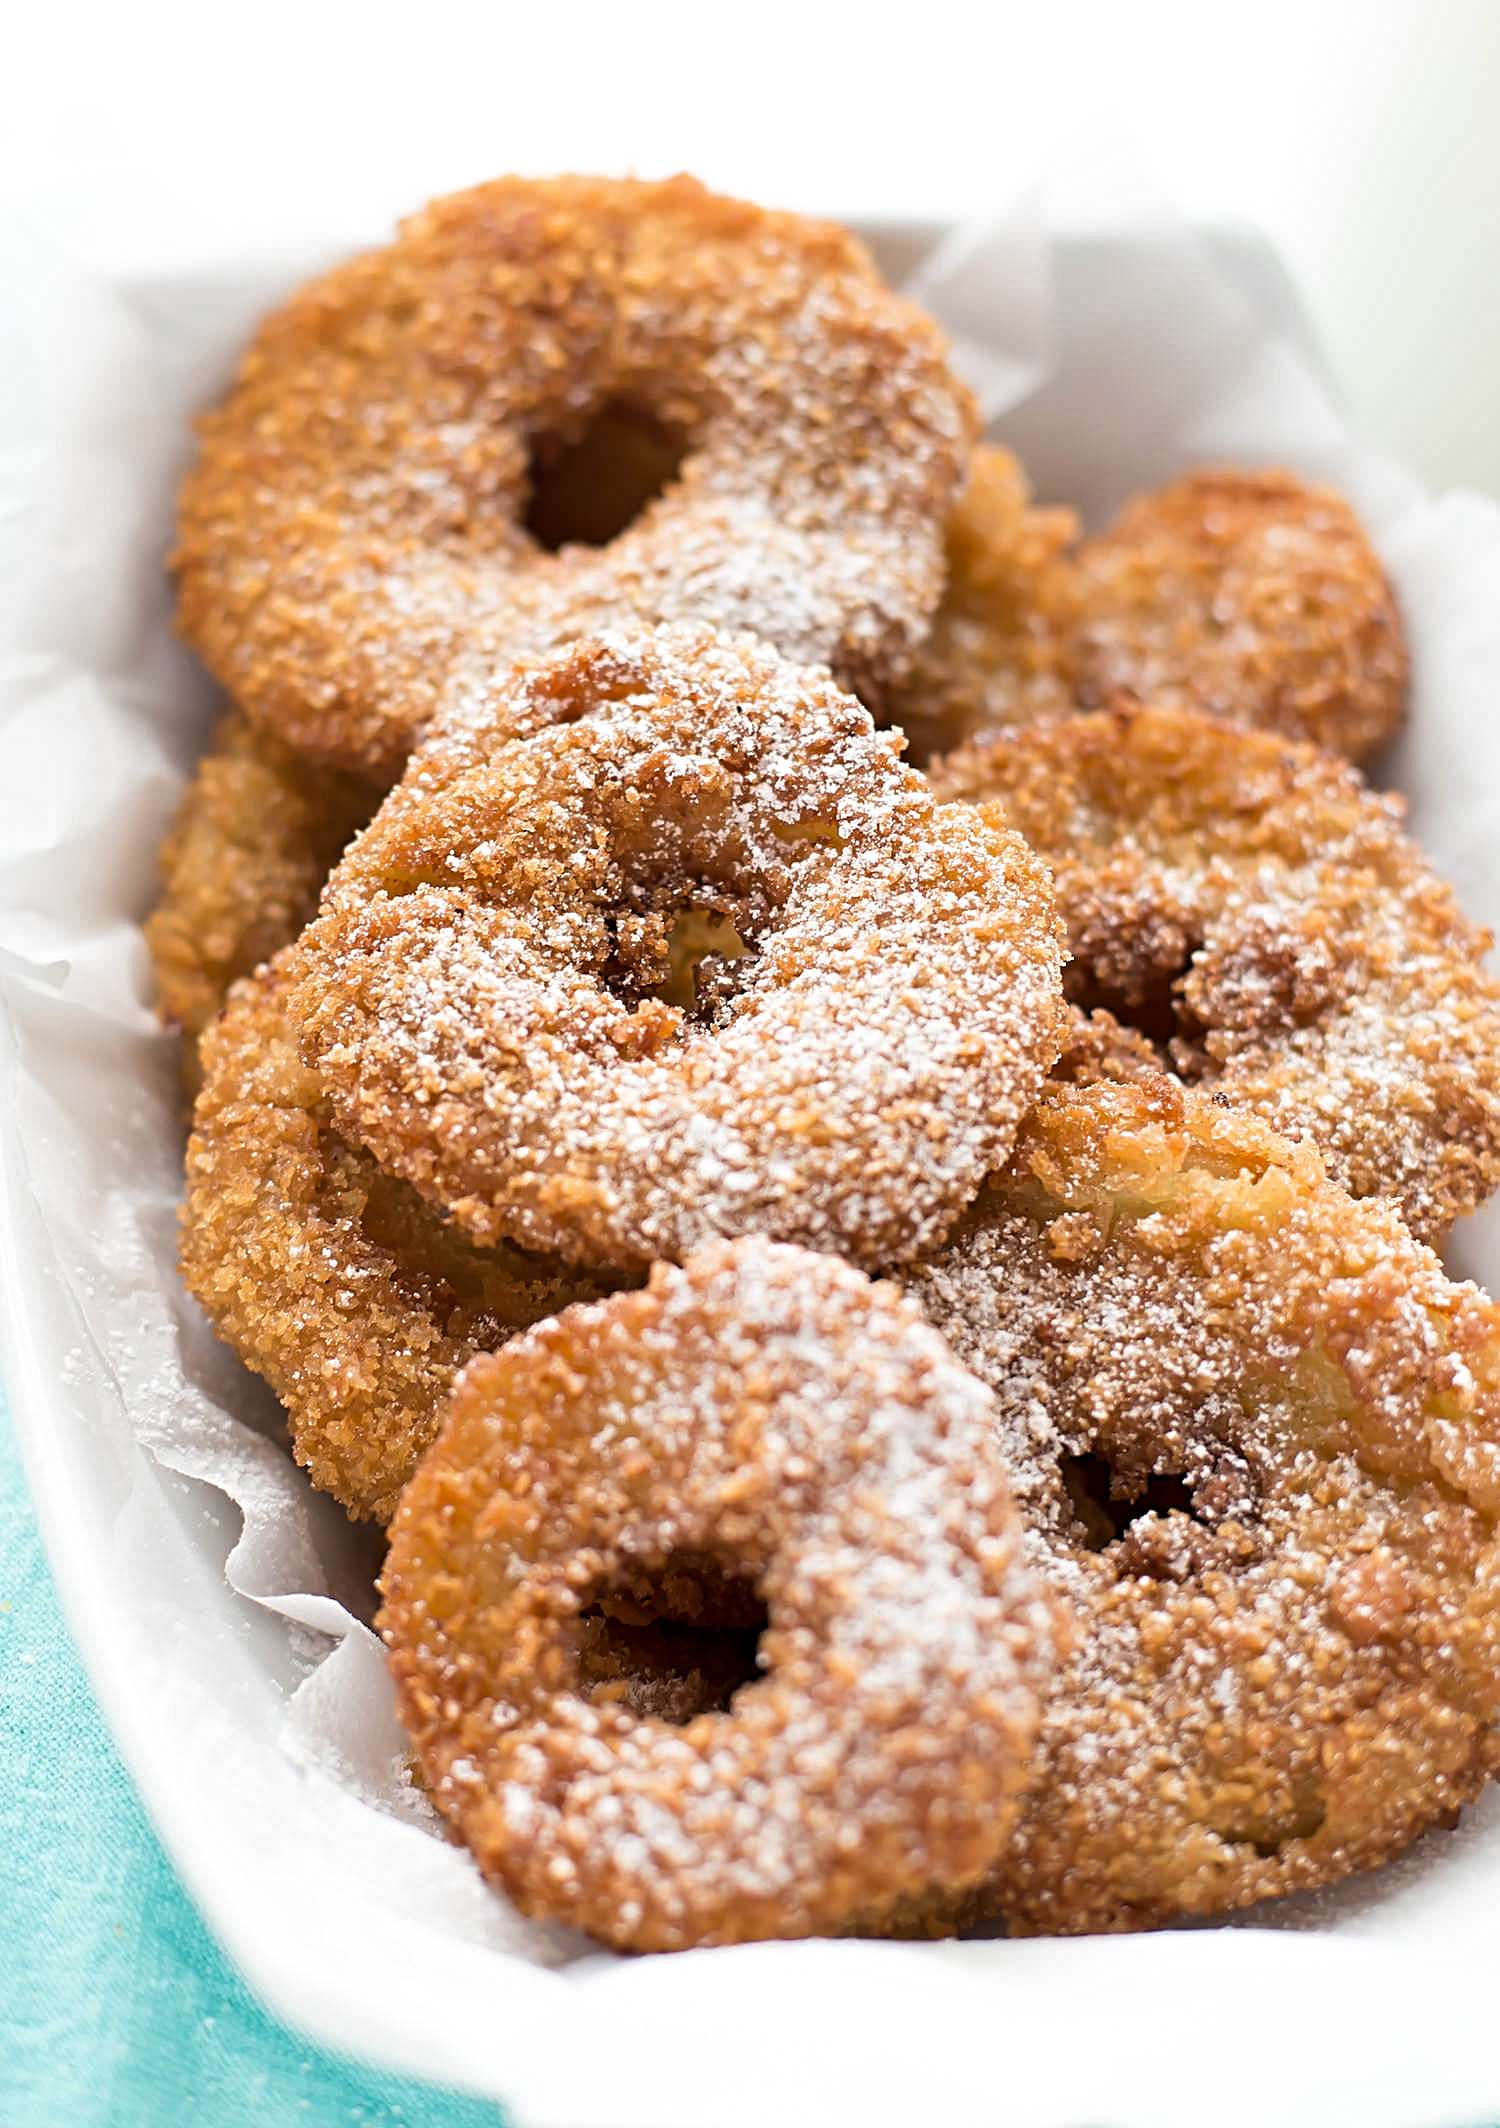 Deep-Fried Crispy Apple Donuts: apple rings dipped in a sweet cinnamony batter and crispy panko crumbs then deep-fried to crunchy perfection. | TrufflesandTrends.com